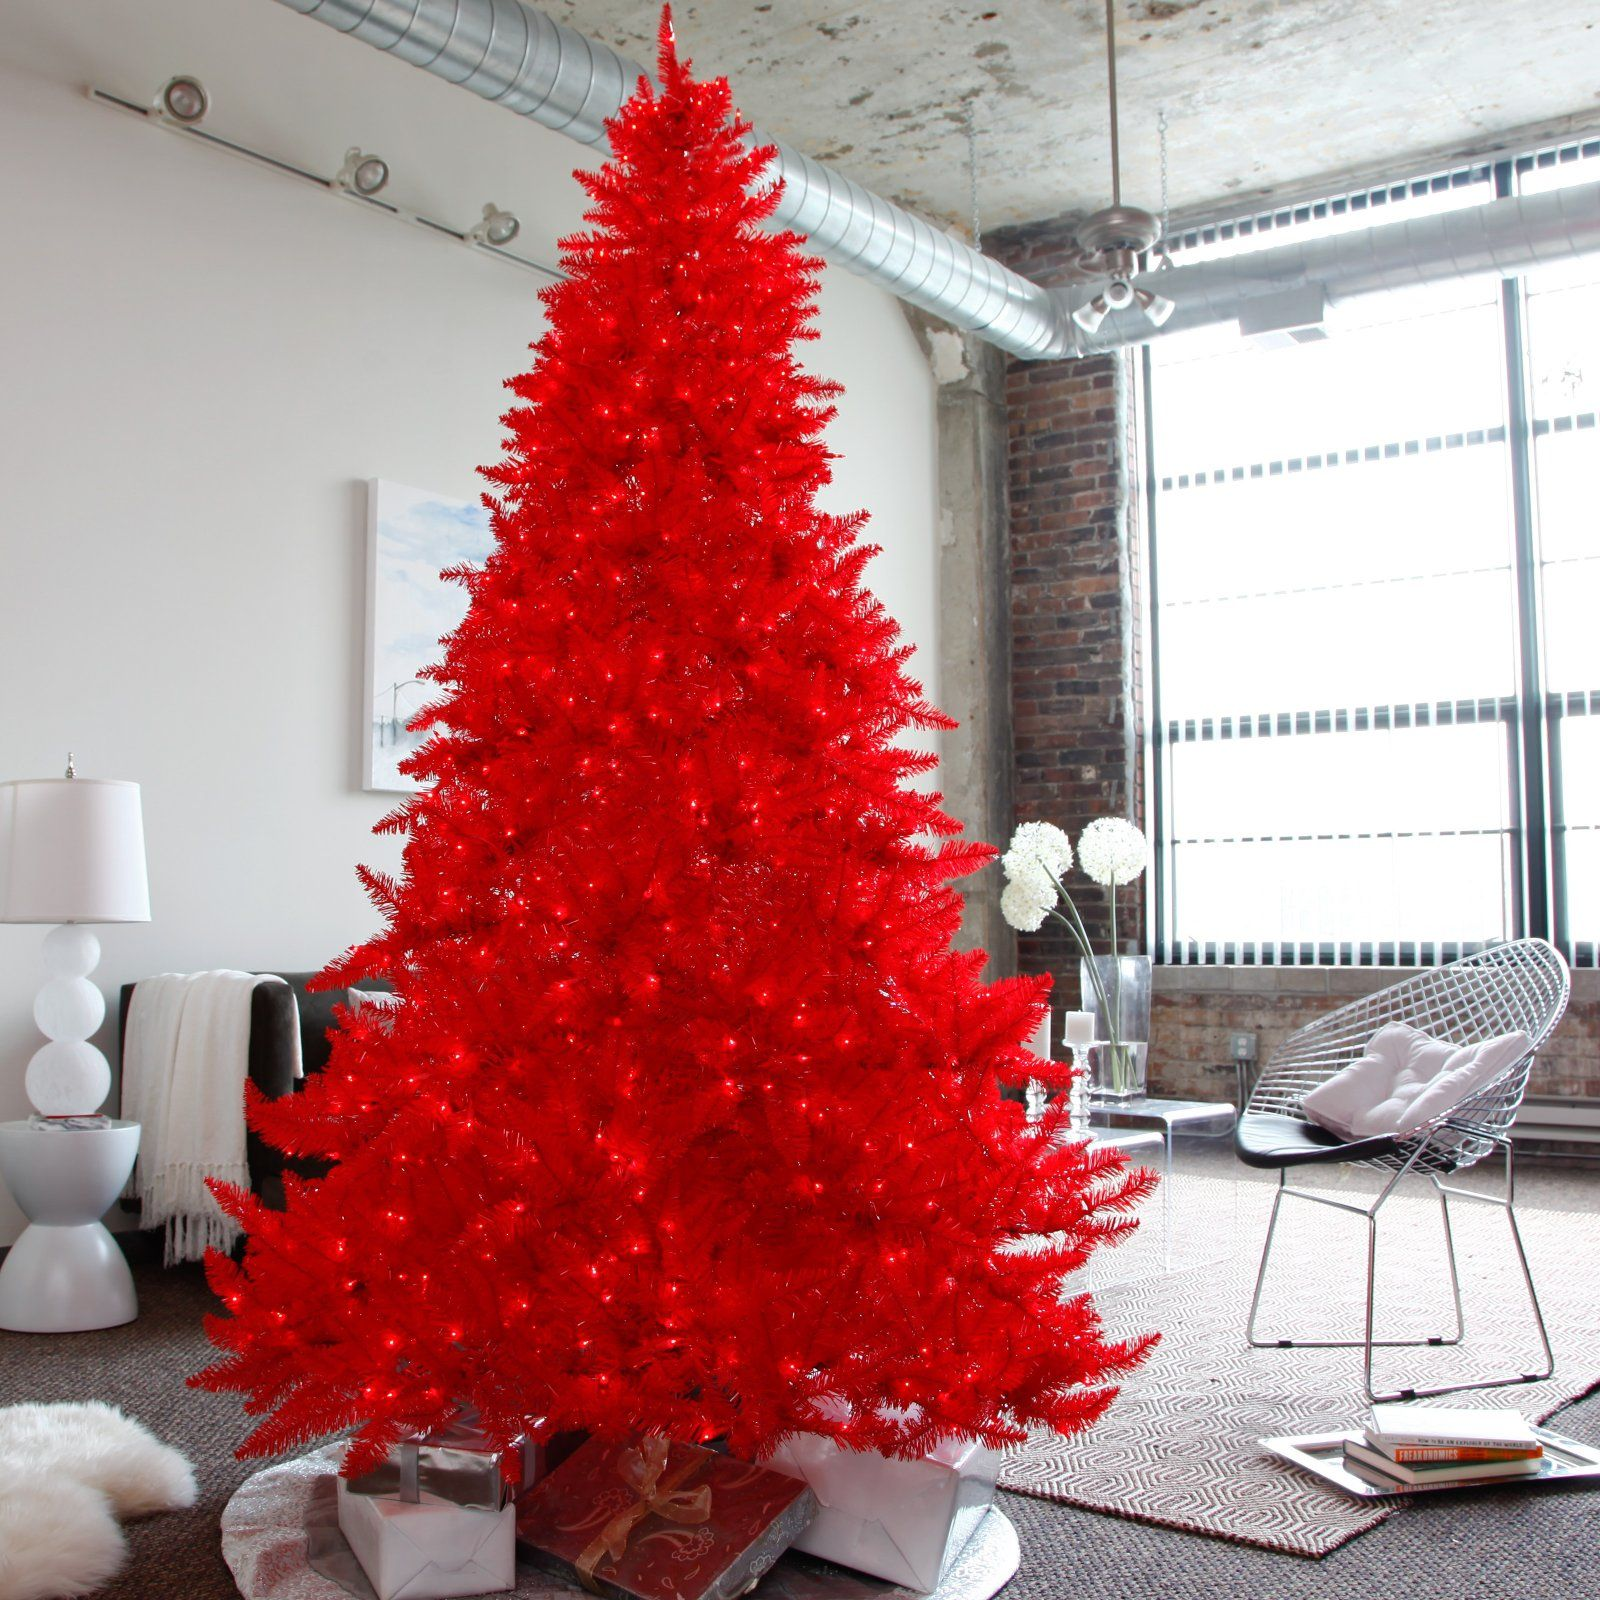 When I finally get a home of my own, I so want a red Christmas tree ...